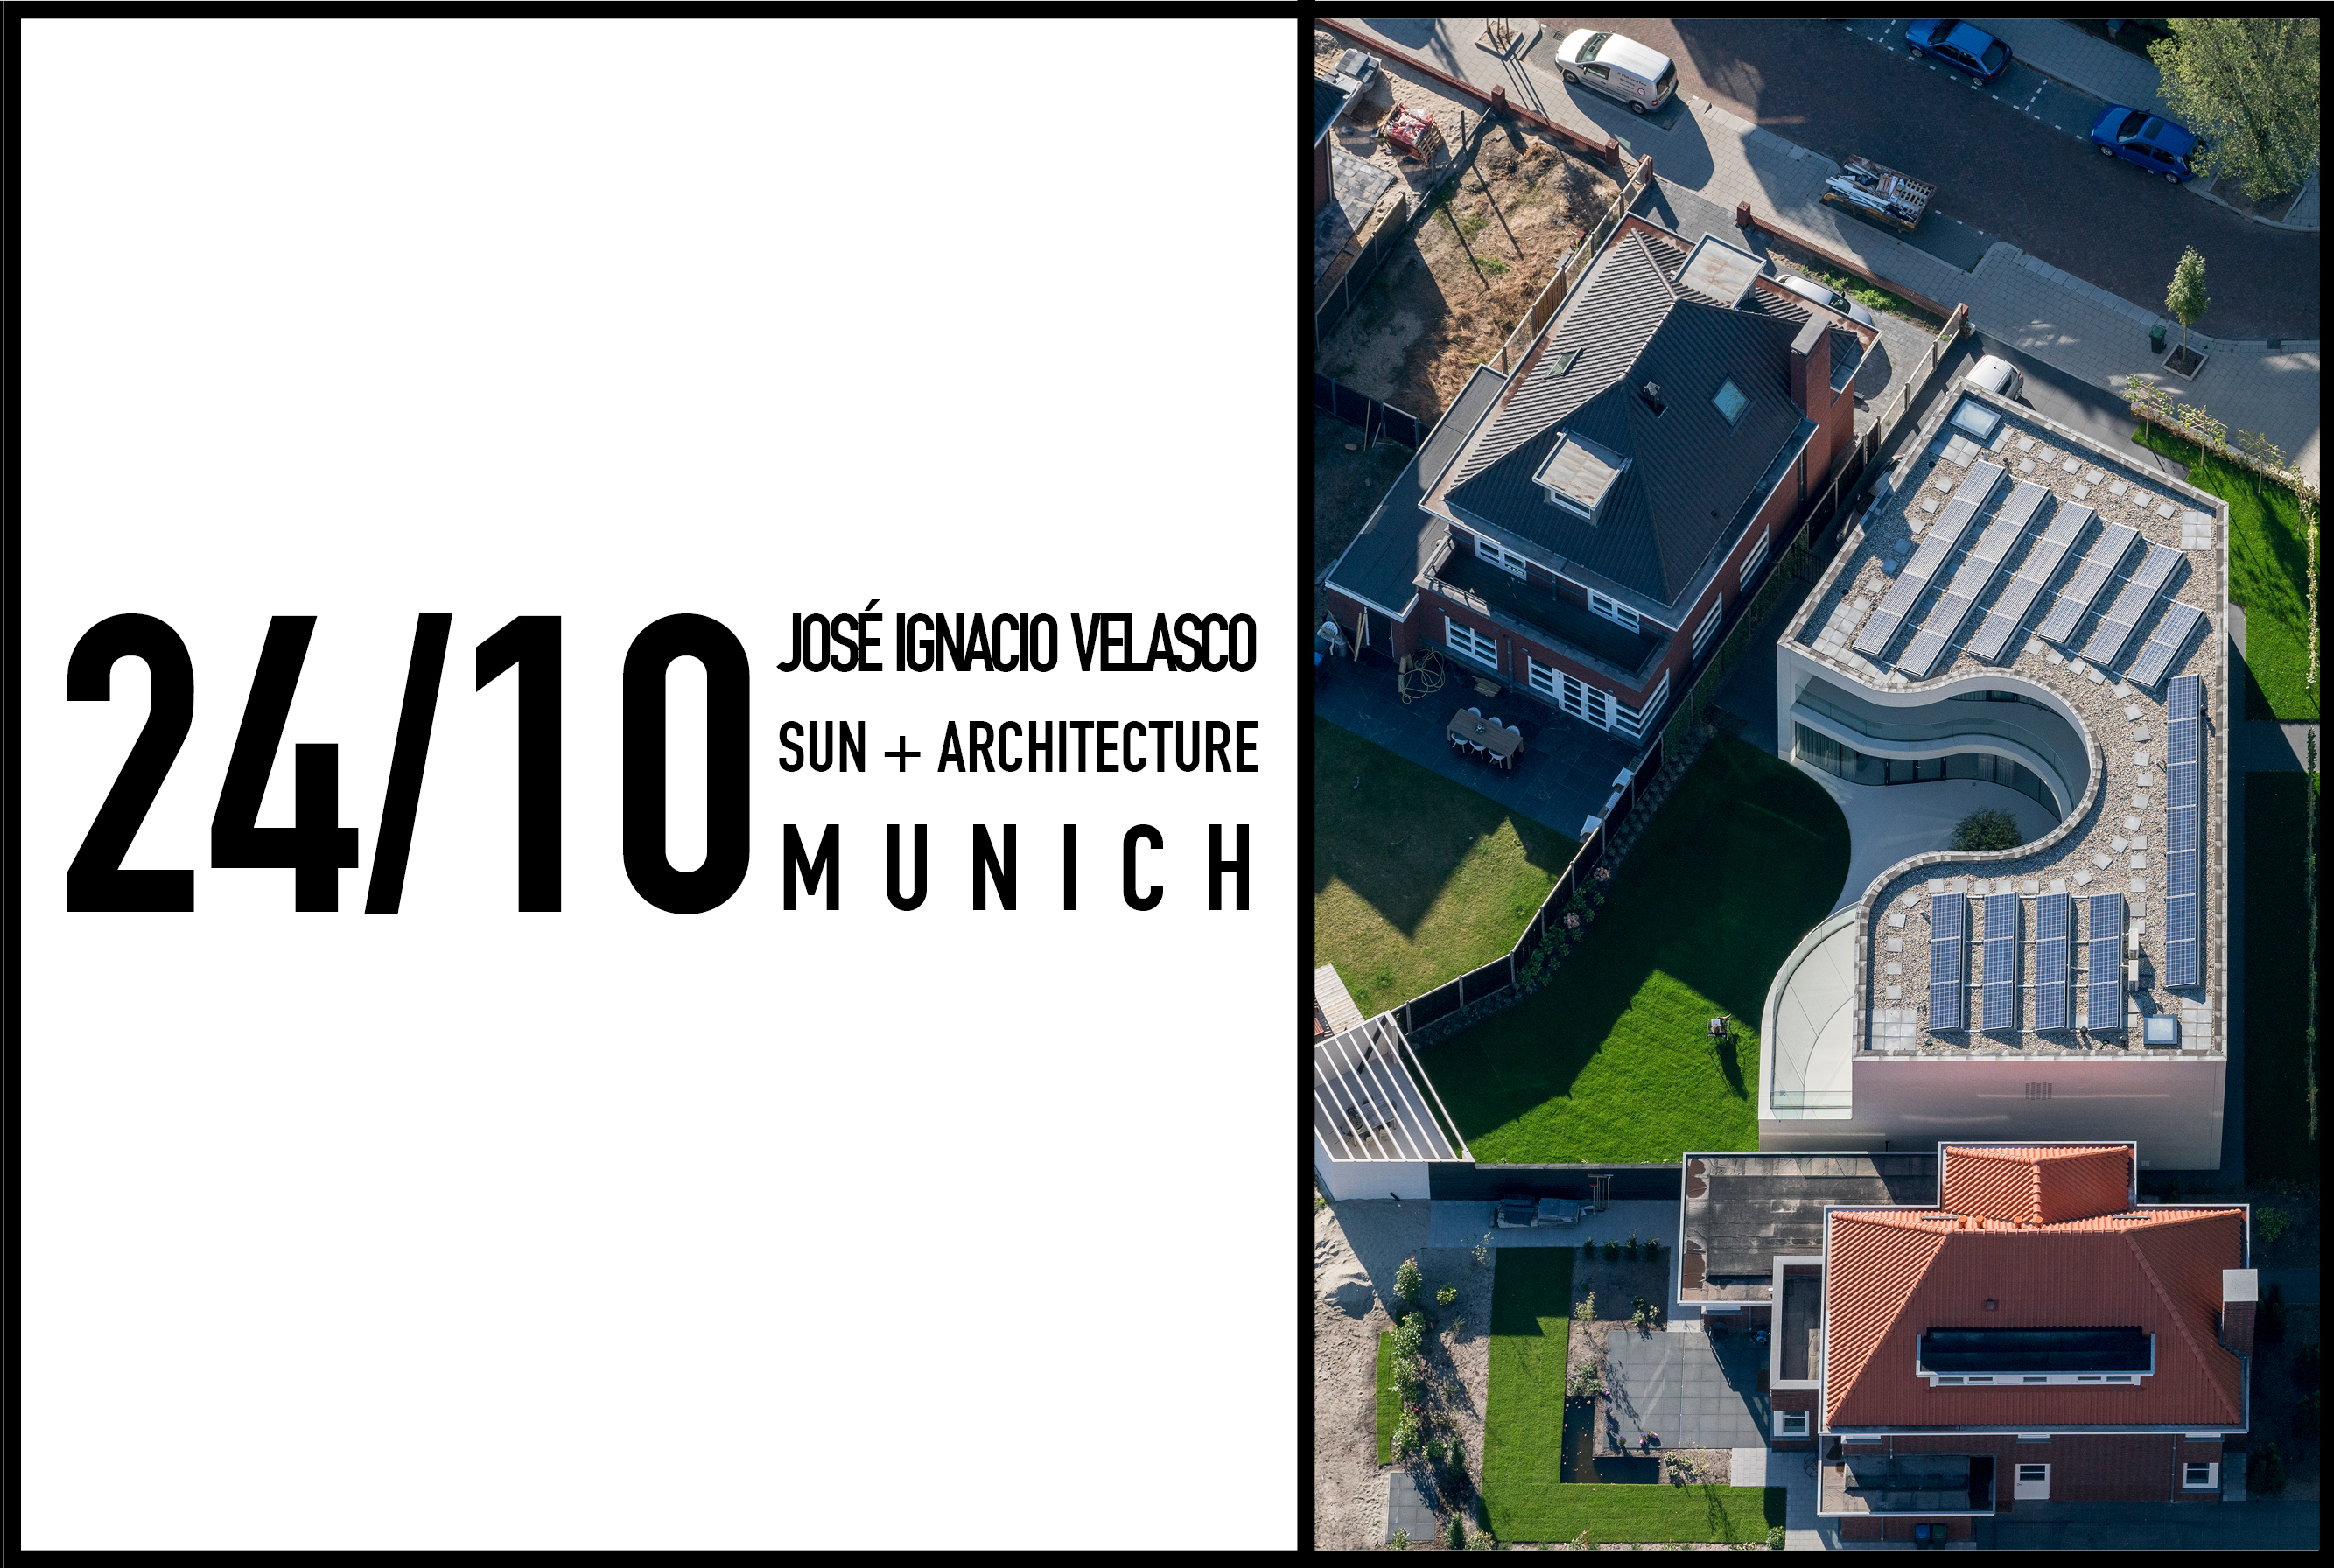 José Ignacio Velasco Martin to lecture about sun and architecture in Munich, 24 October 2017